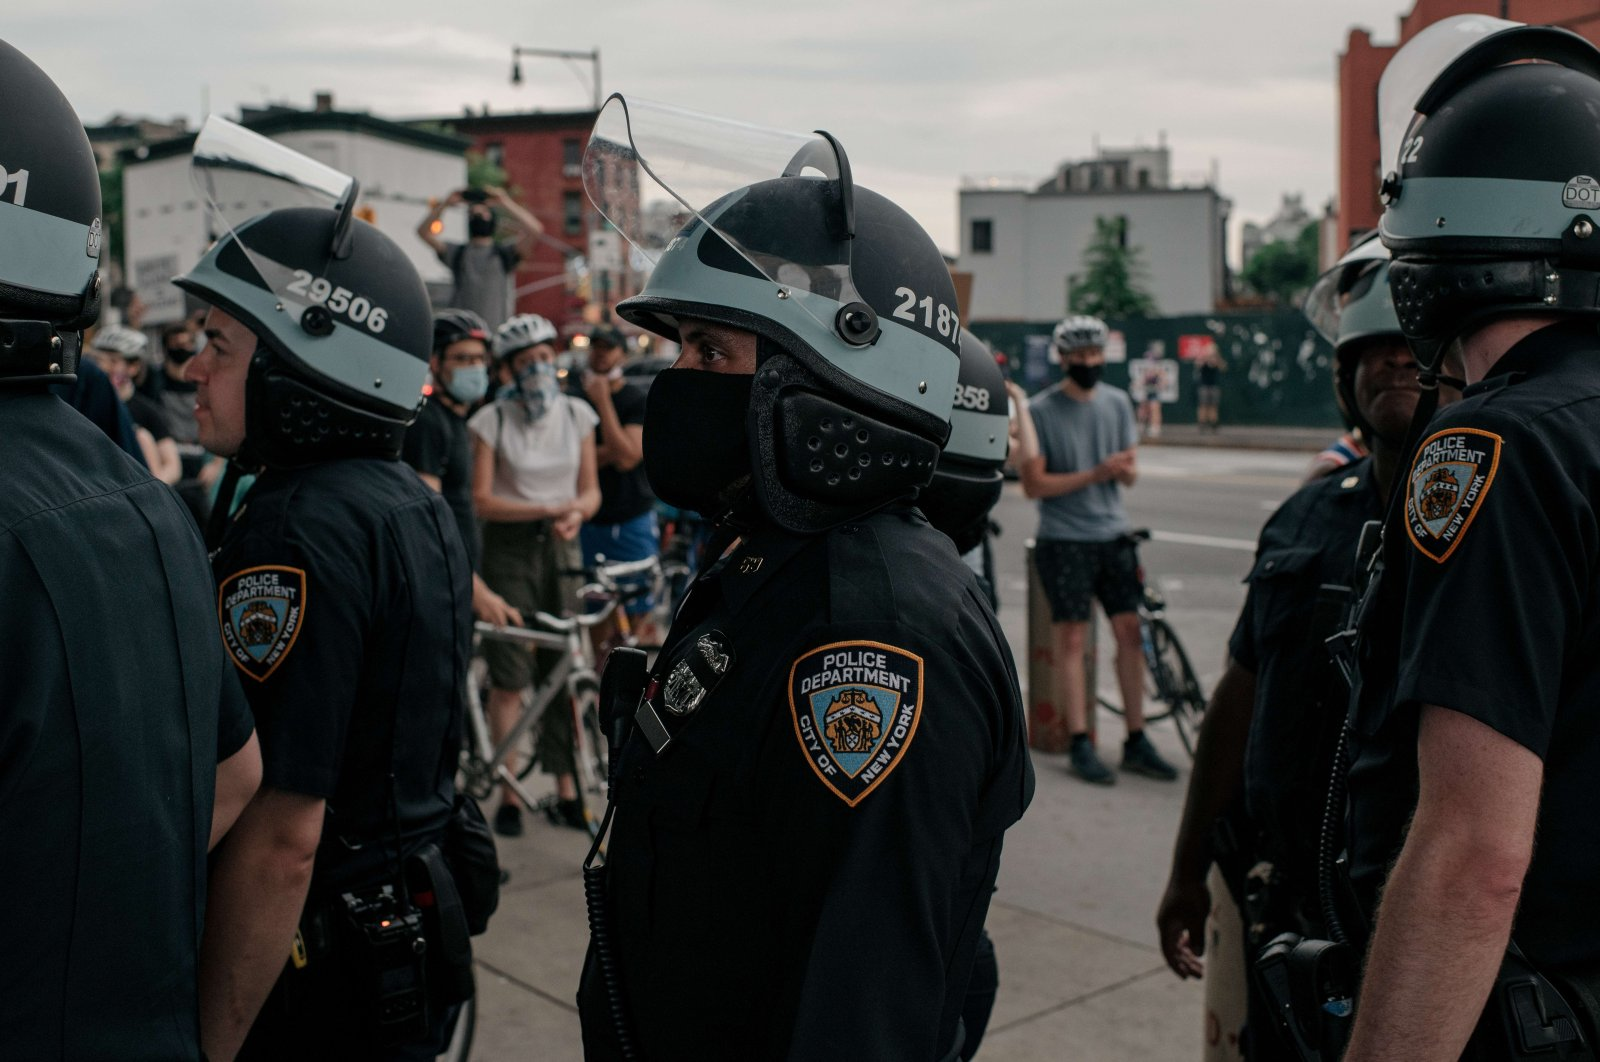 NYPD officers stand in line near a demonstration denouncing systemic racism in law enforcement in the borough of Brooklyn minutes before a citywide curfew went into effect on June 4, 2020 in New York City. (AFP Photo)